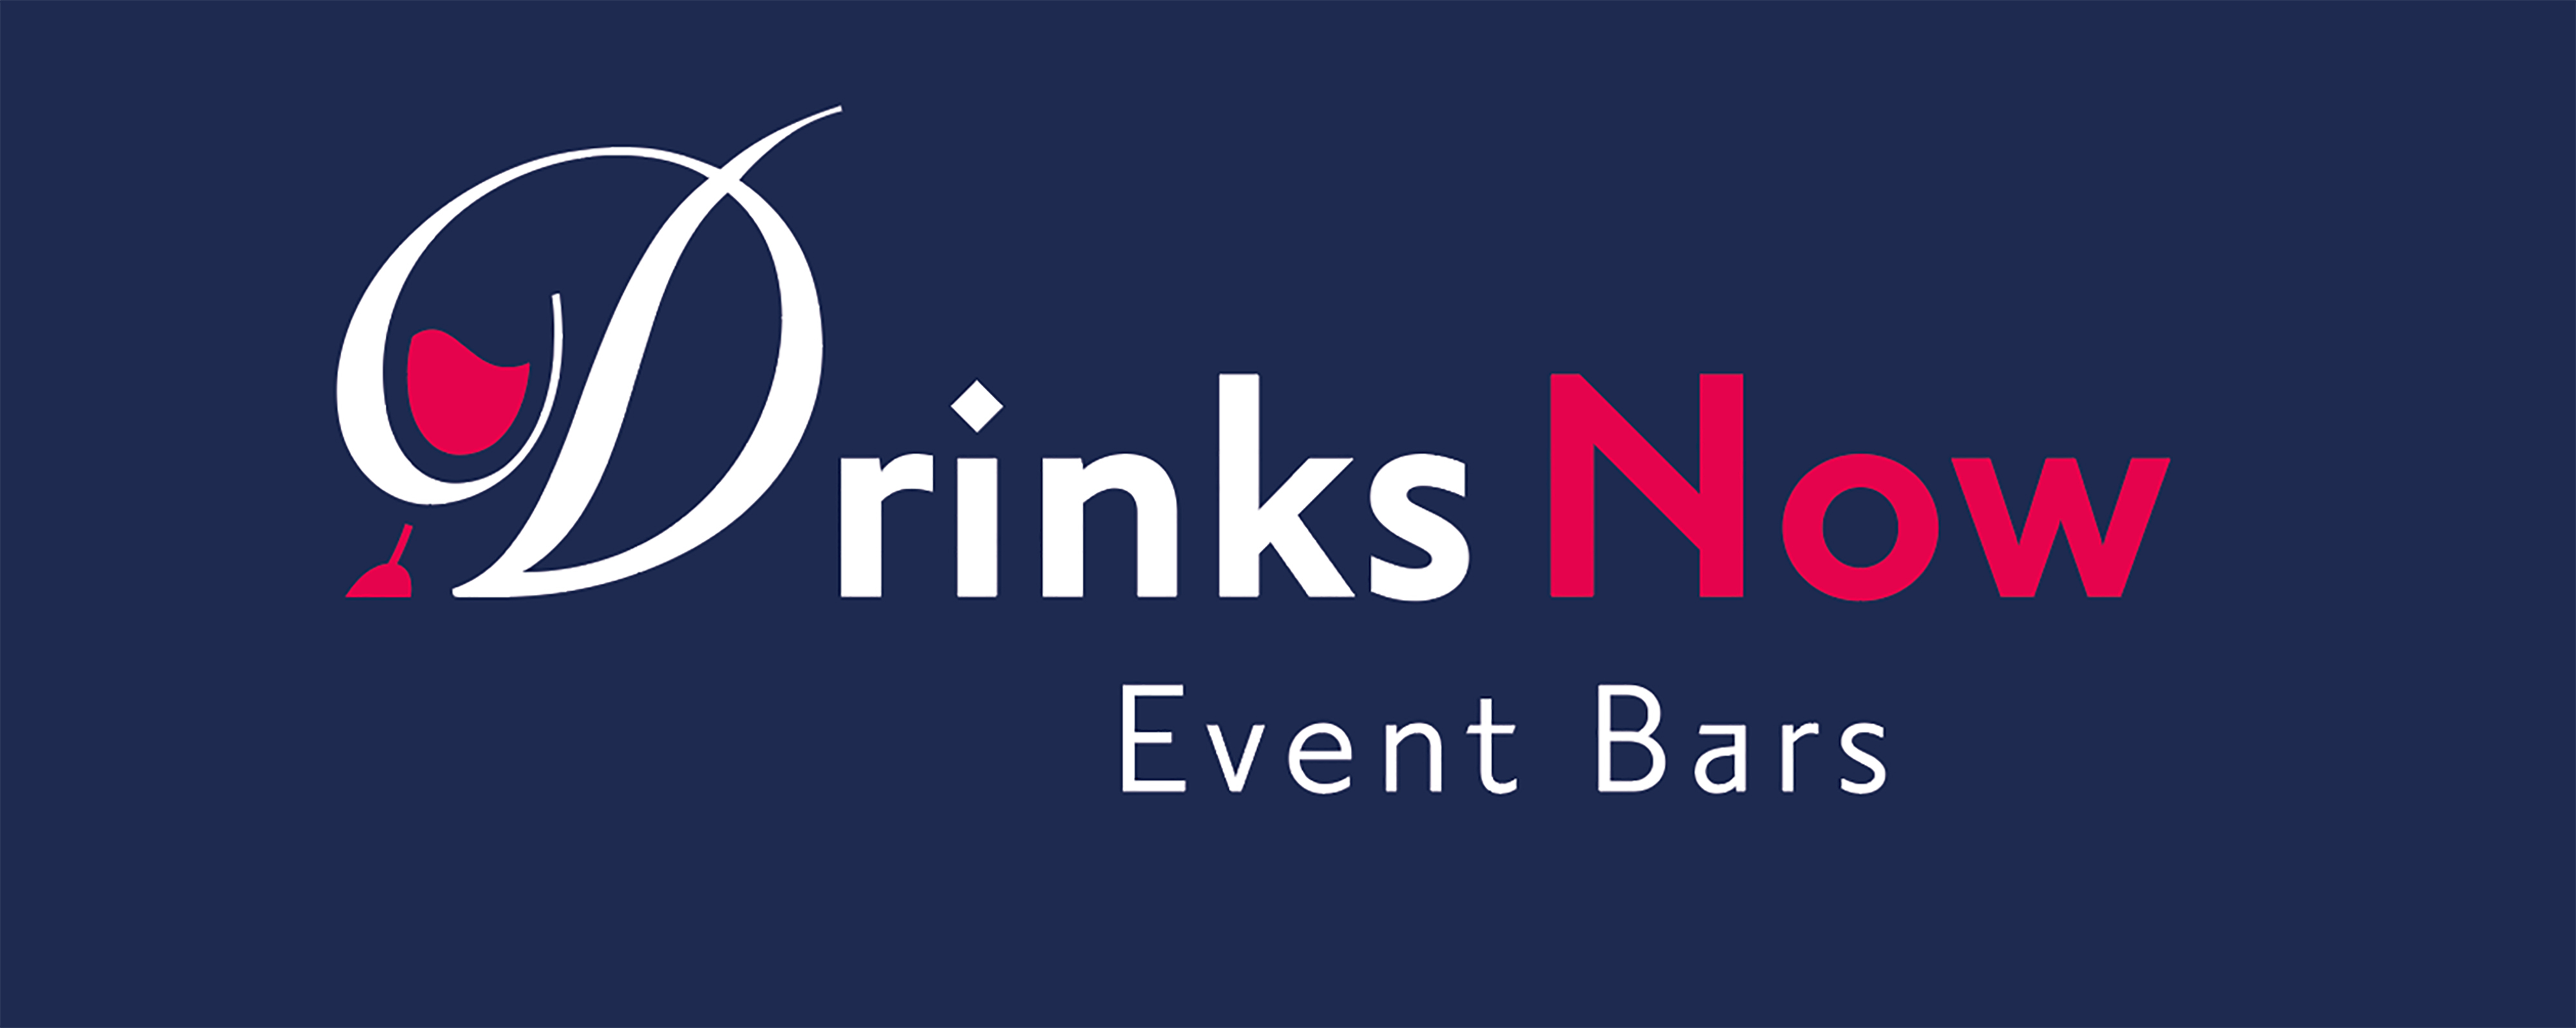 Drinks-Now.co.uk